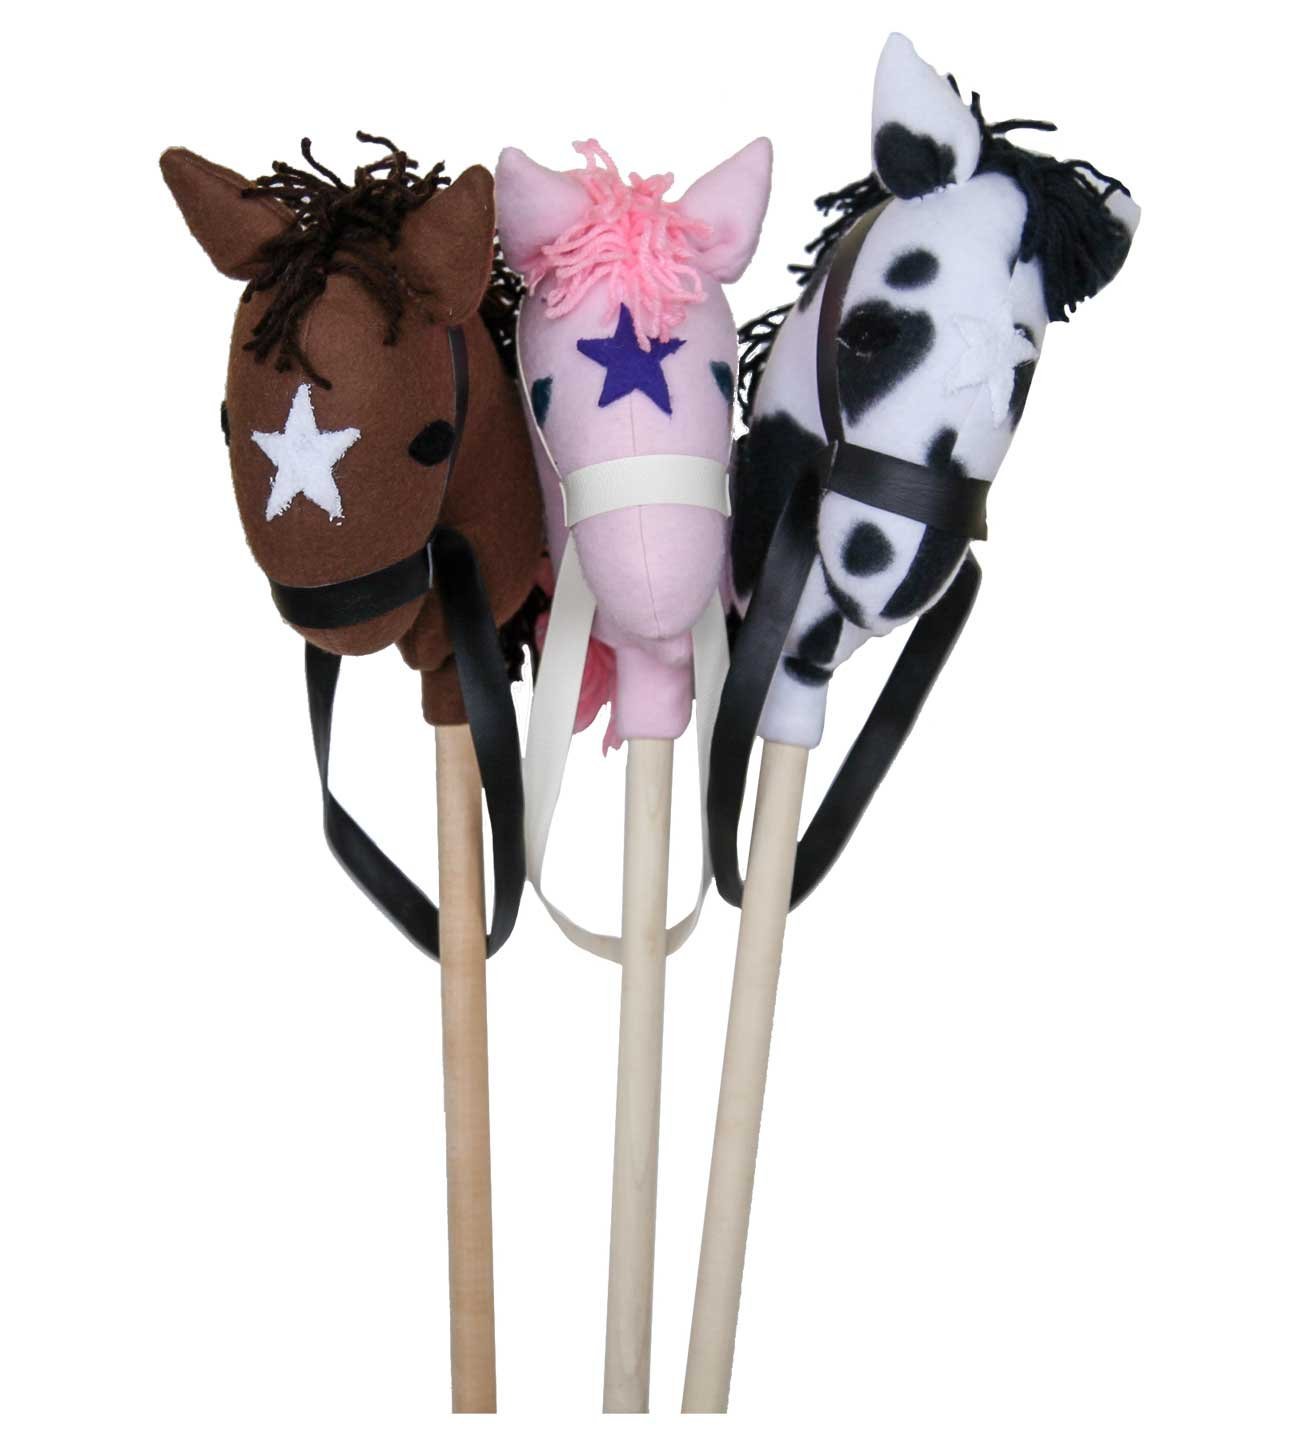 Classic Ride On Stick Horse Toy Maple Wood Made in the USA, BLACK